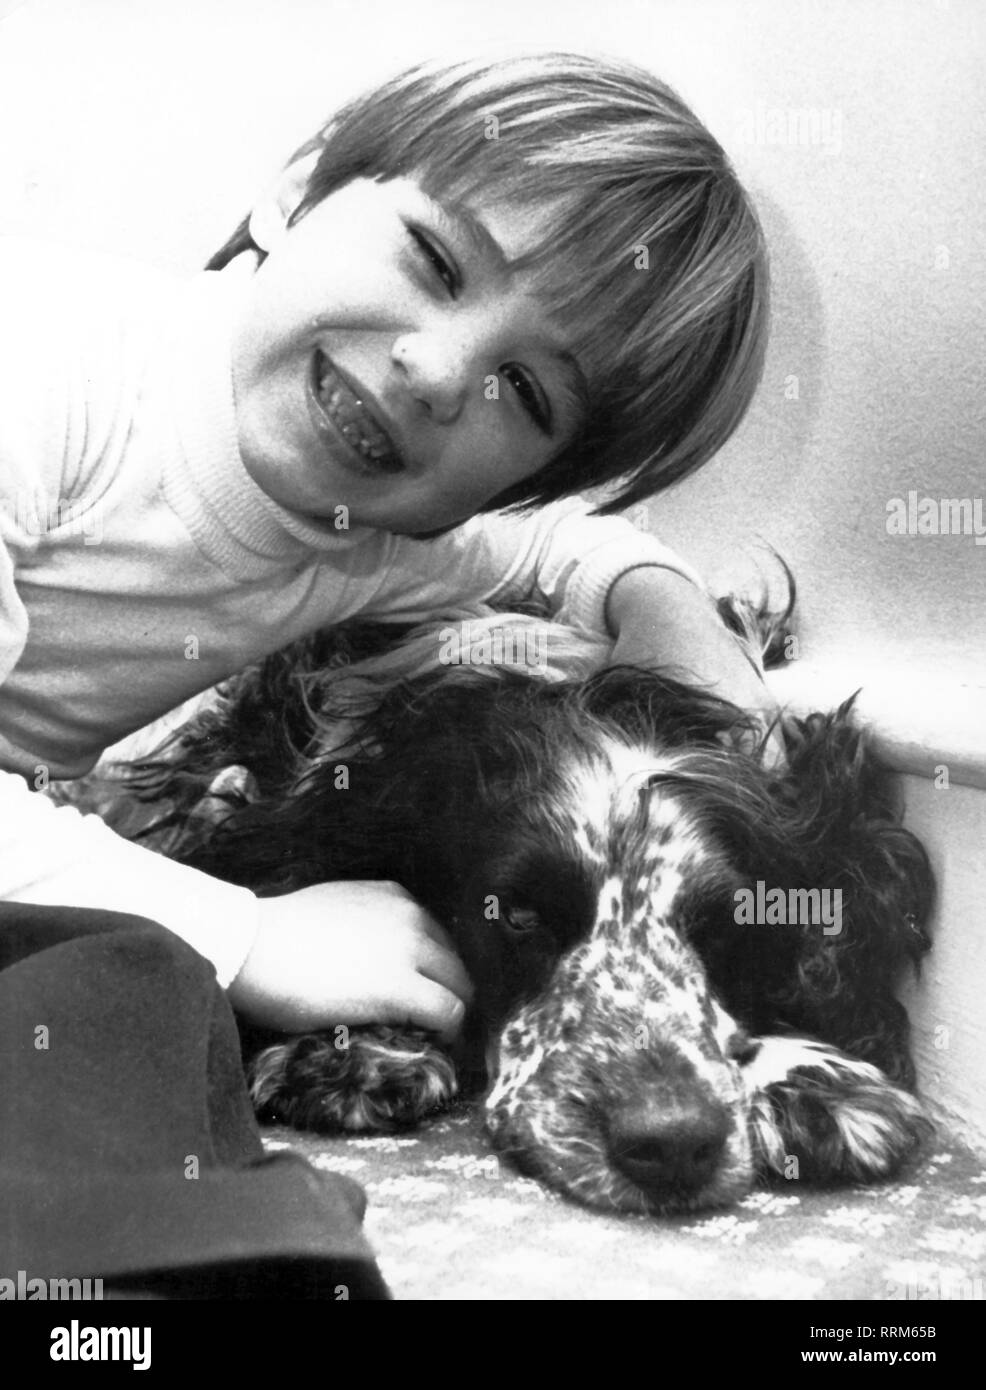 Kennedy, Matthew Maxwell, * 11.1.1965, American author / writer, as child with his dog, early 1970s, Additional-Rights-Clearance-Info-Not-Available - Stock Image